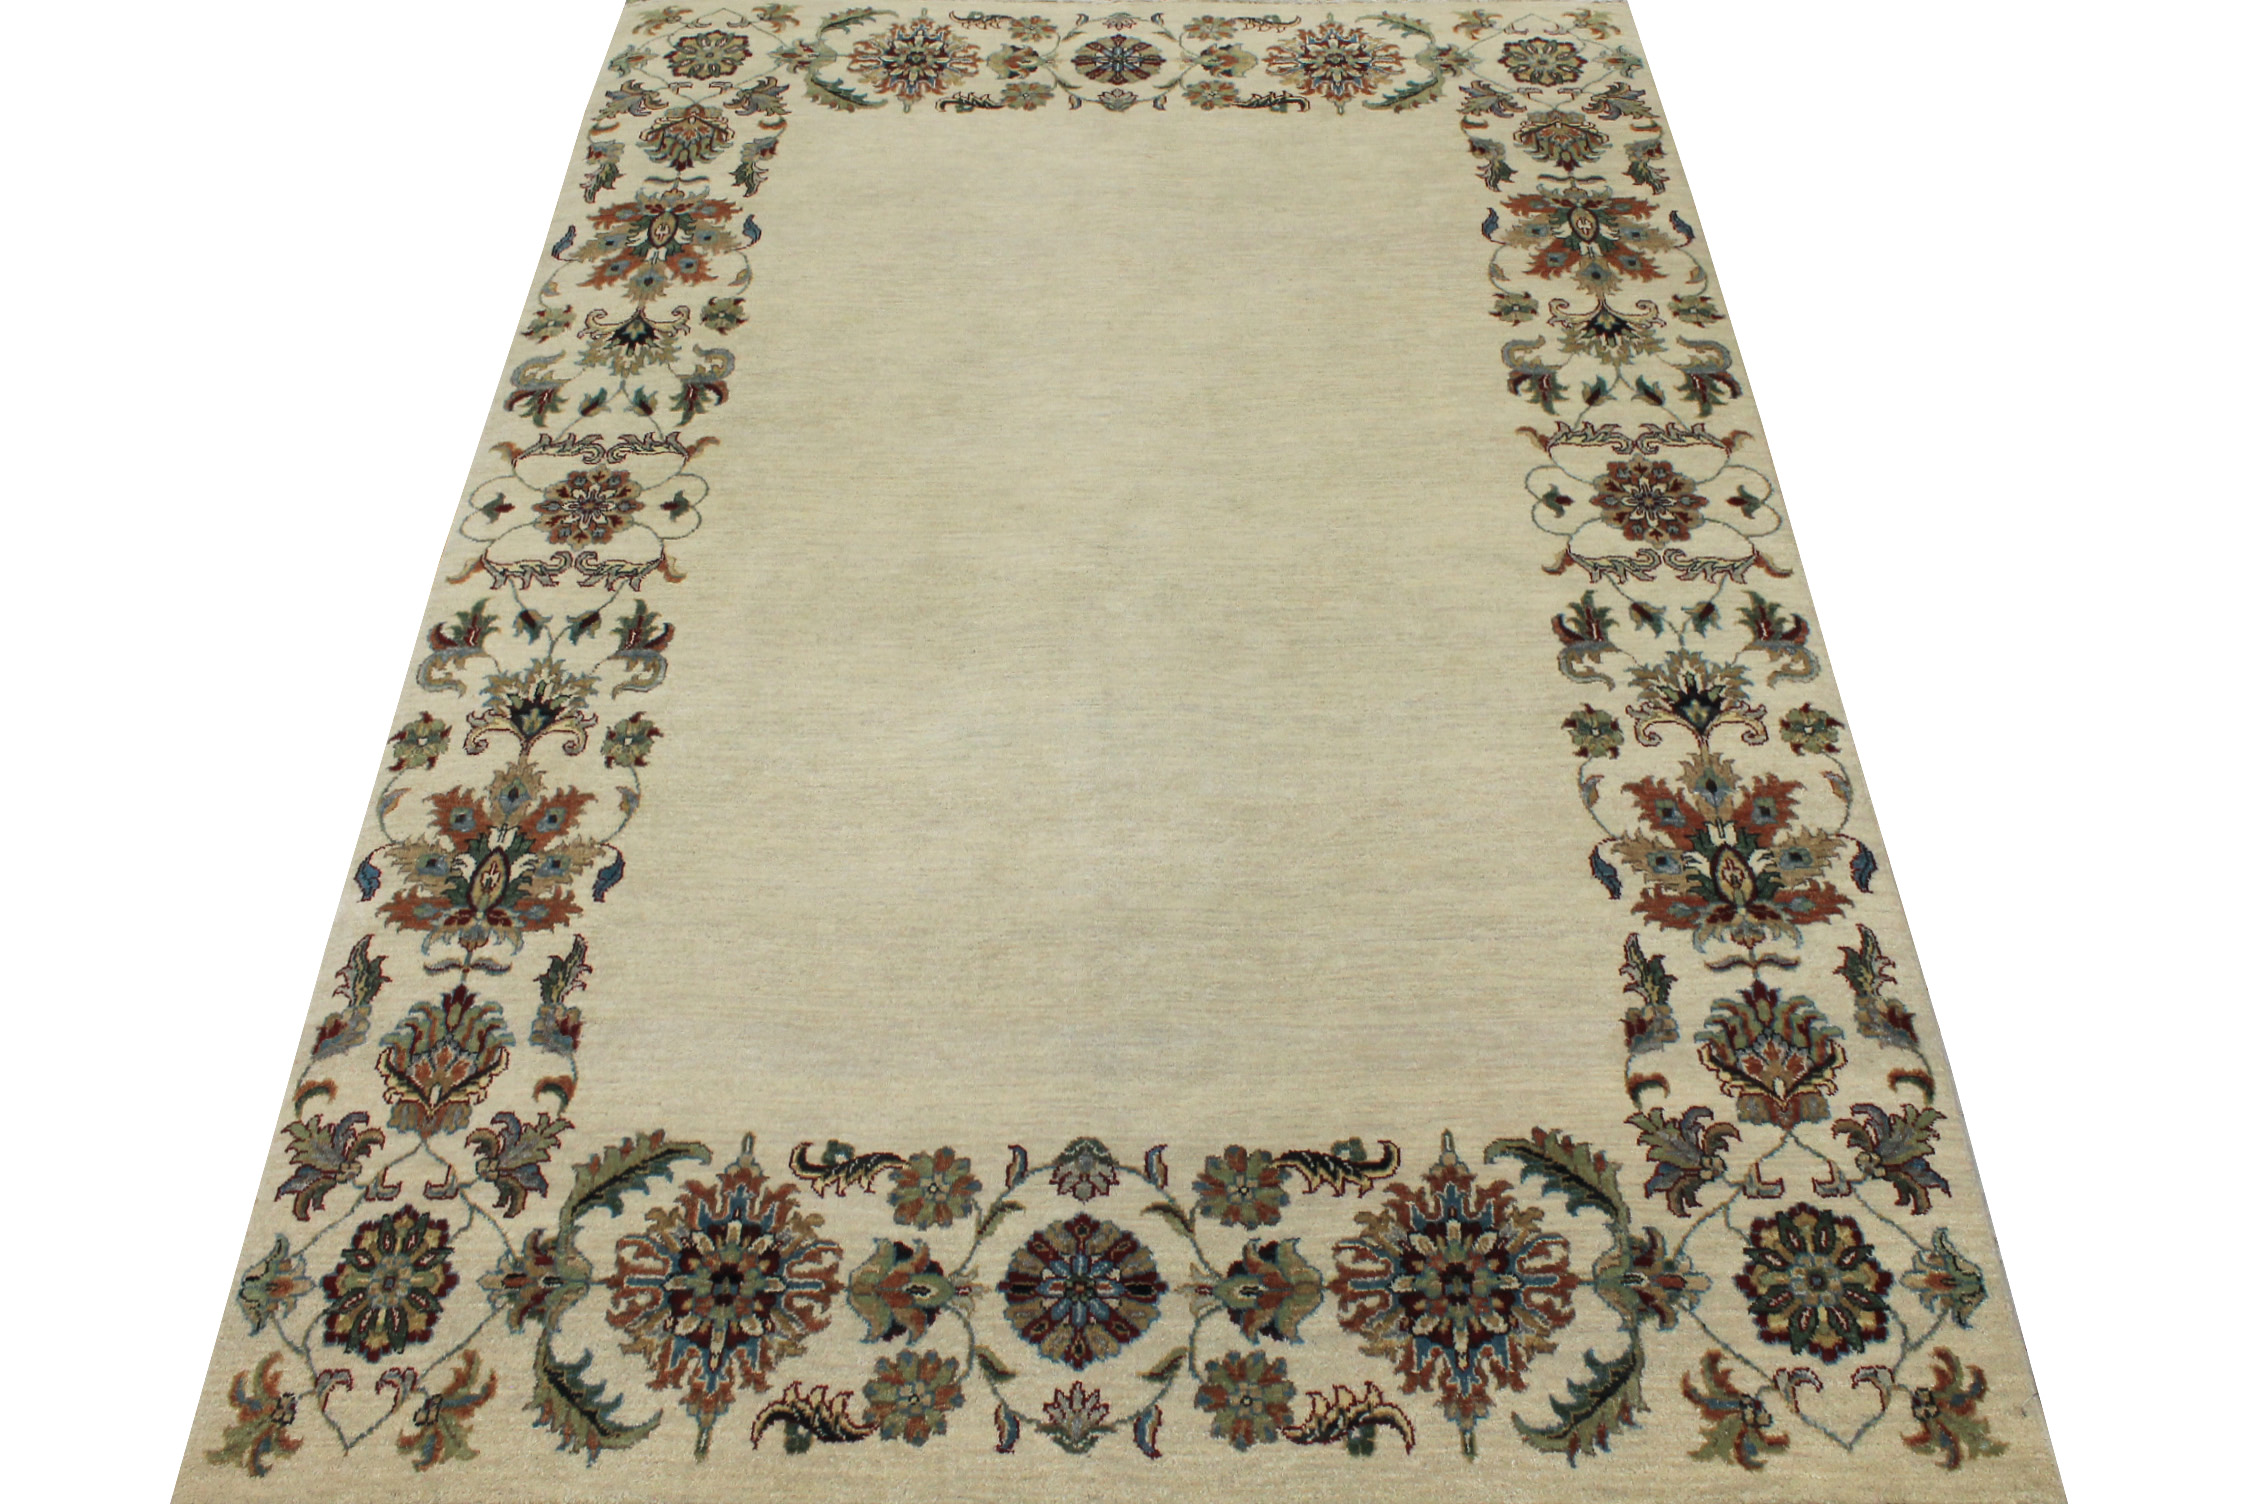 5x7/8 Traditional Hand Knotted Wool Area Rug - MR16580